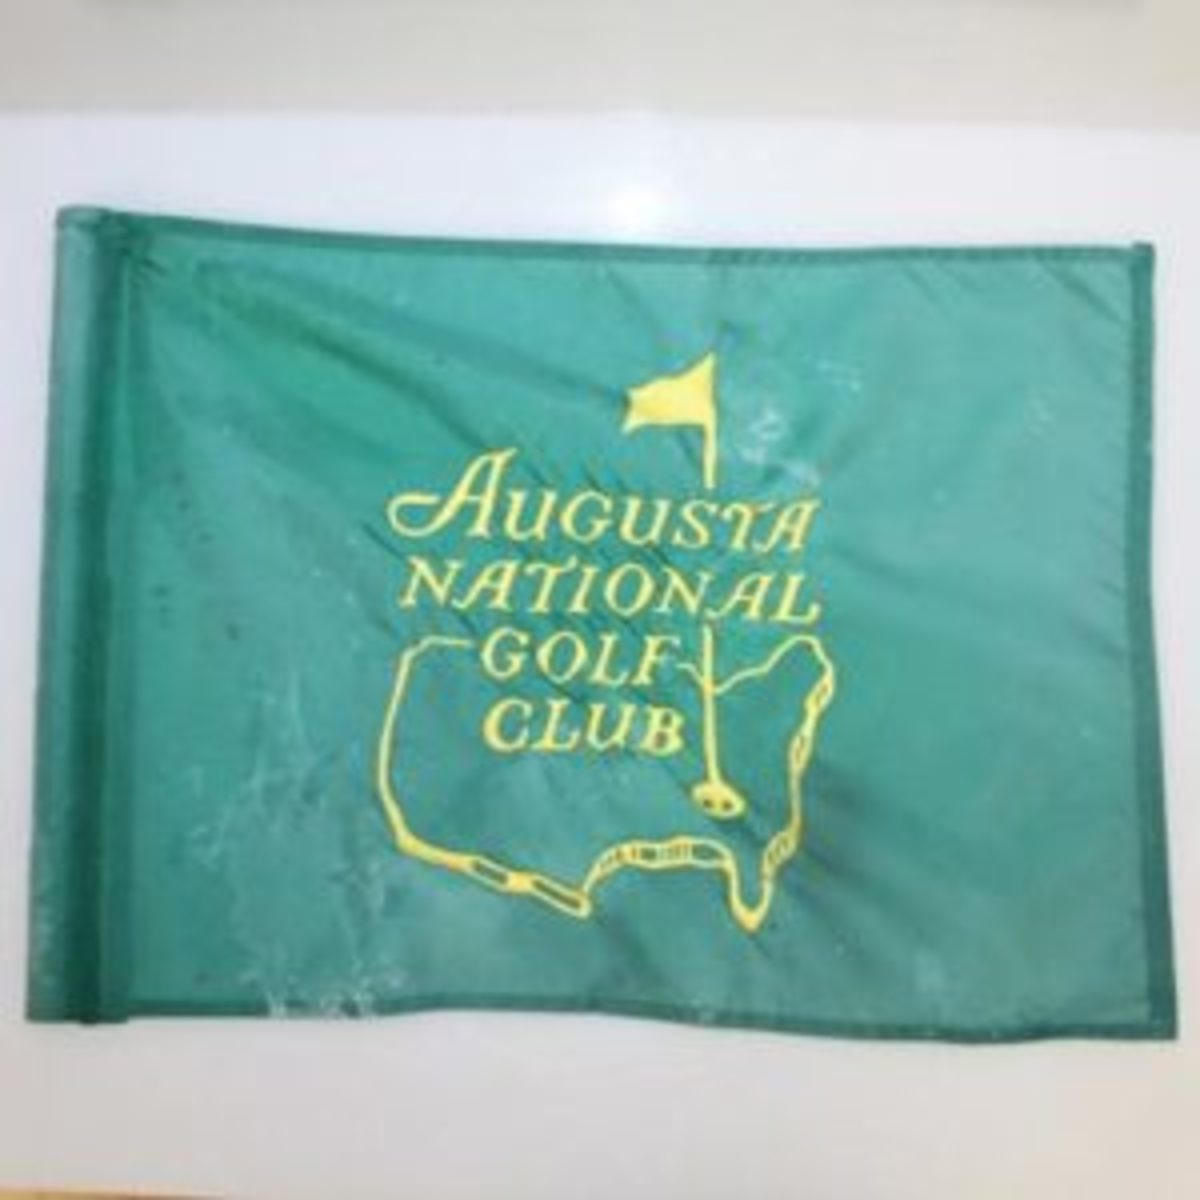 Signed Masters flag